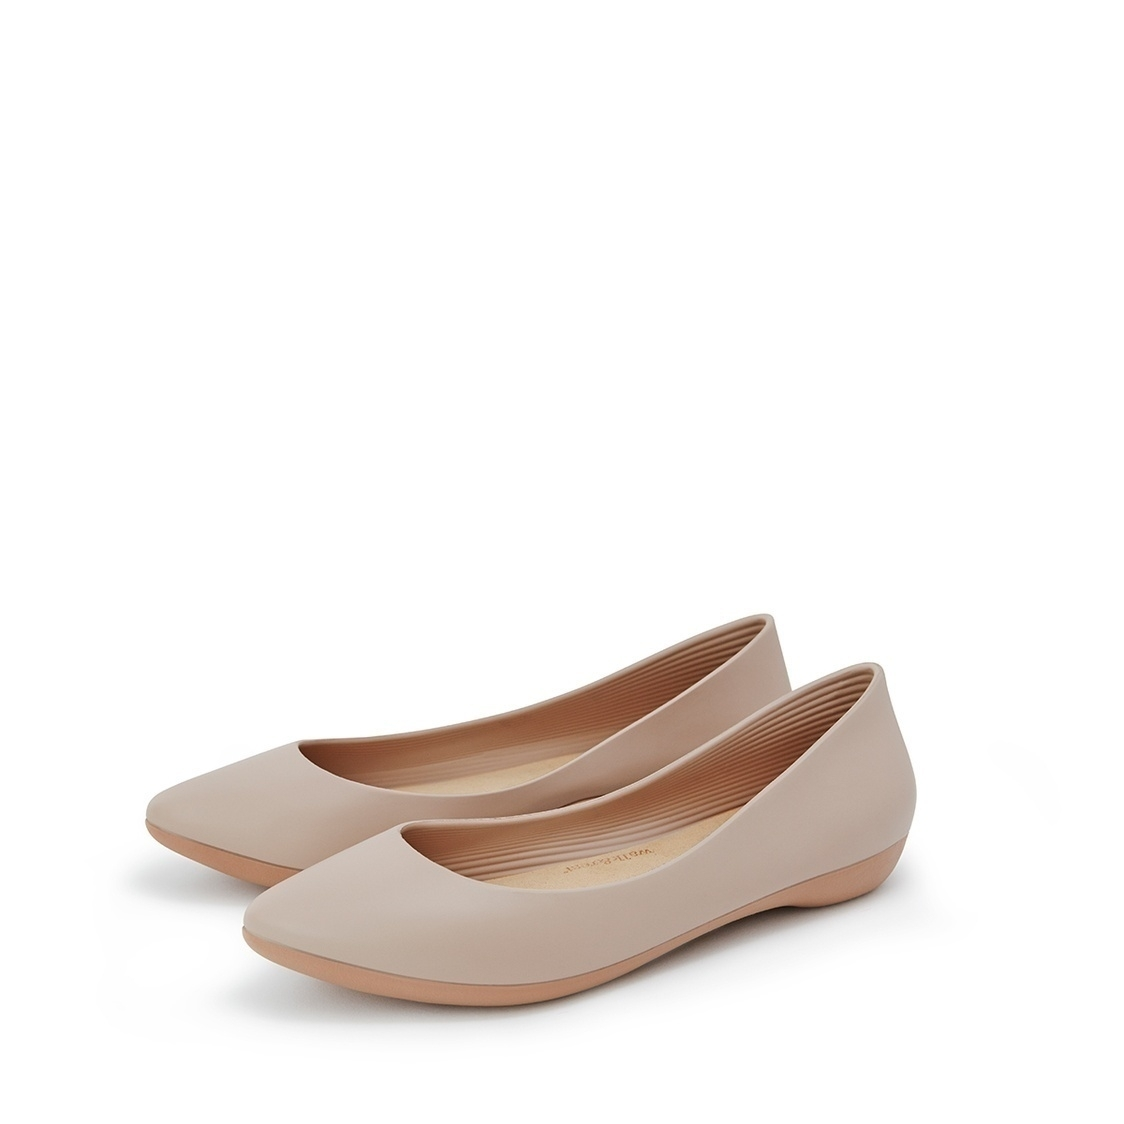 F2 Flat-Pointed Heel height 2cm Nude Beige